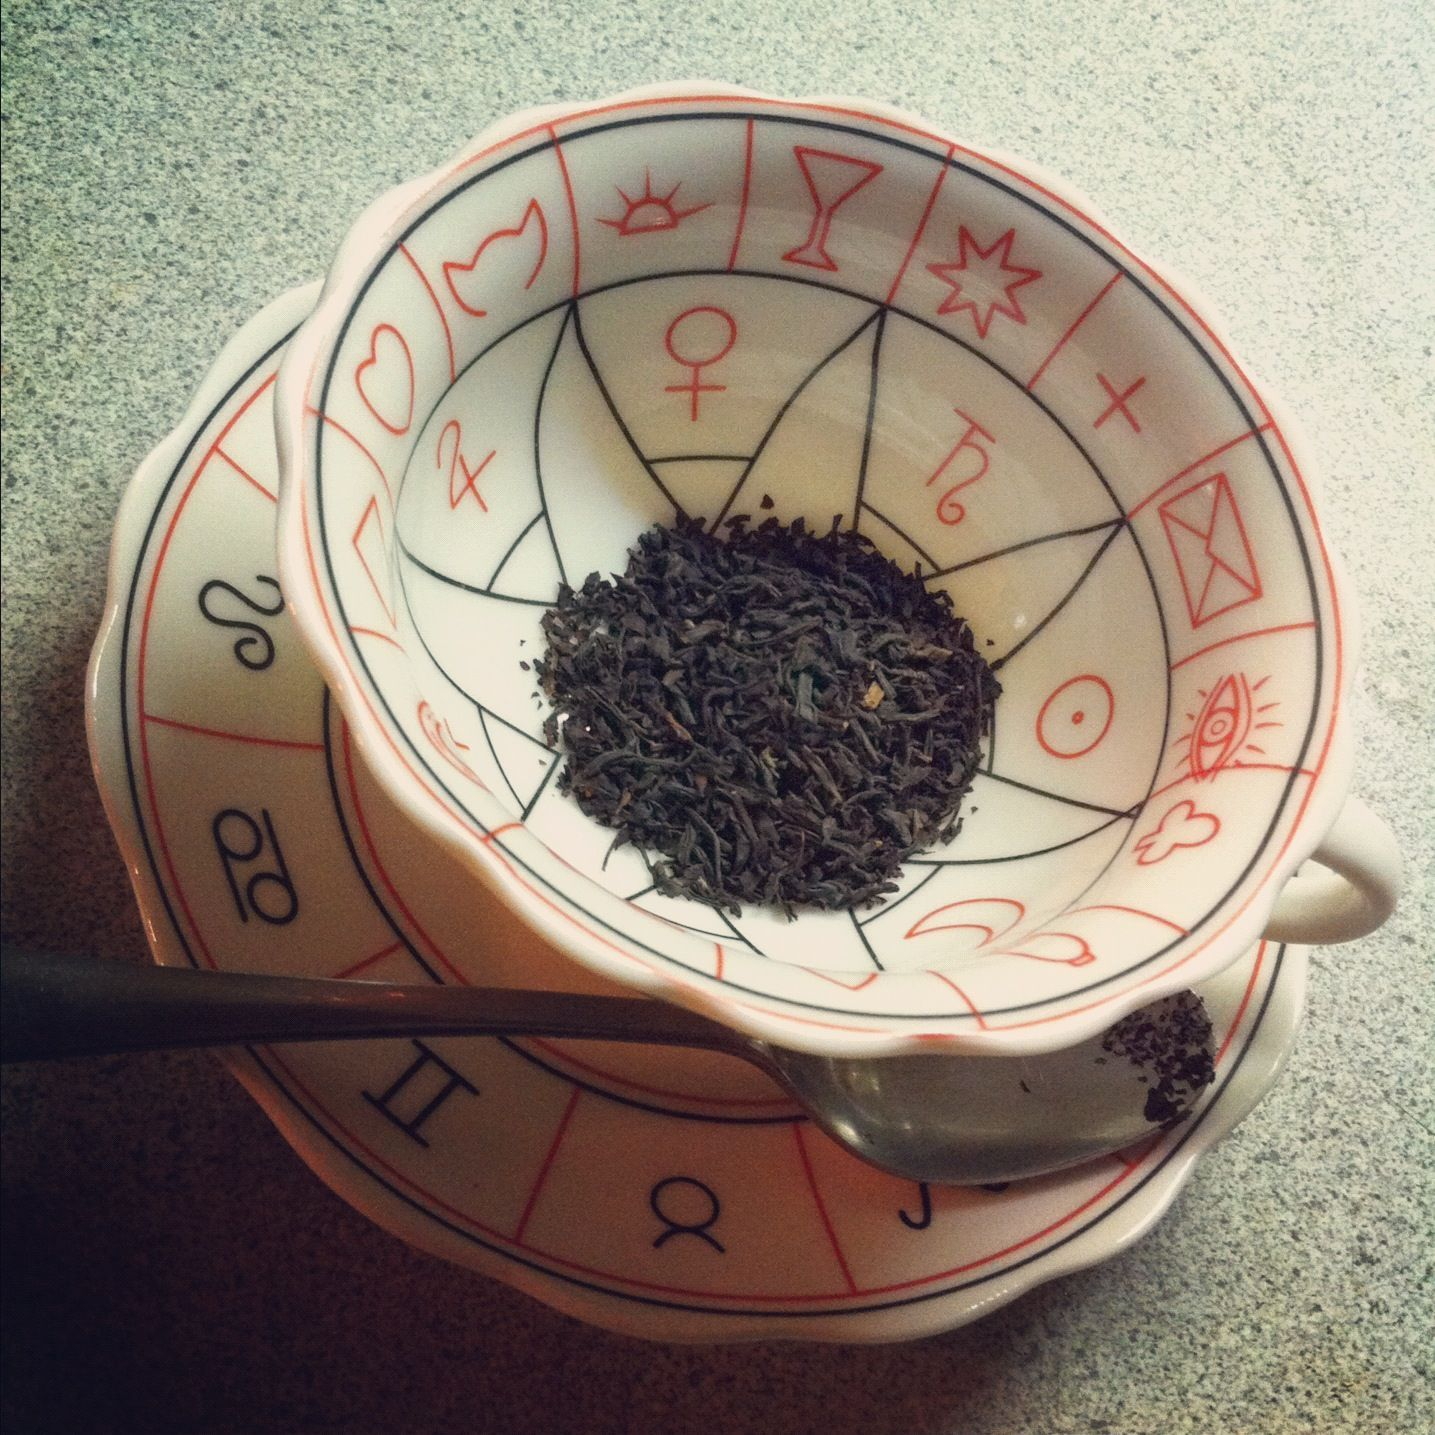 how to read tea leaves meaning